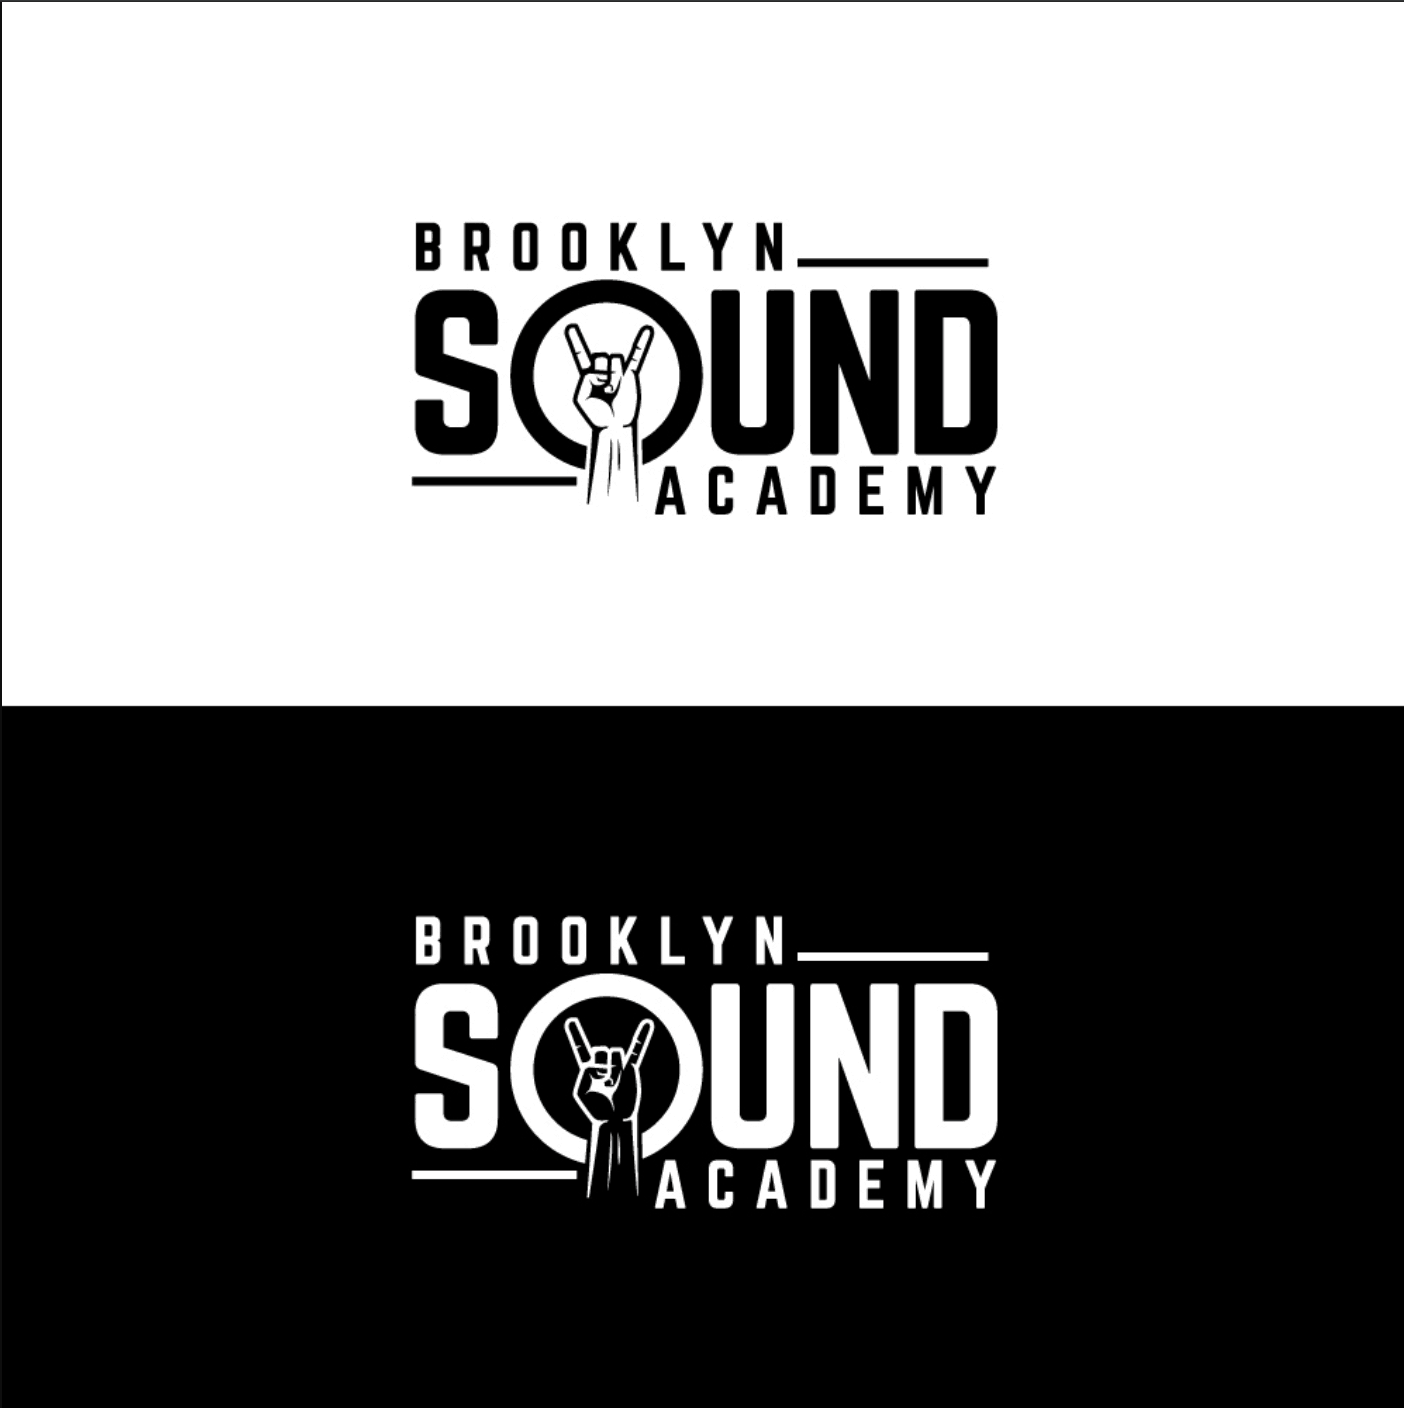 Renderforest alternatives - sample logo made by DesignCrowd designer - Brooklyn Sound Academy